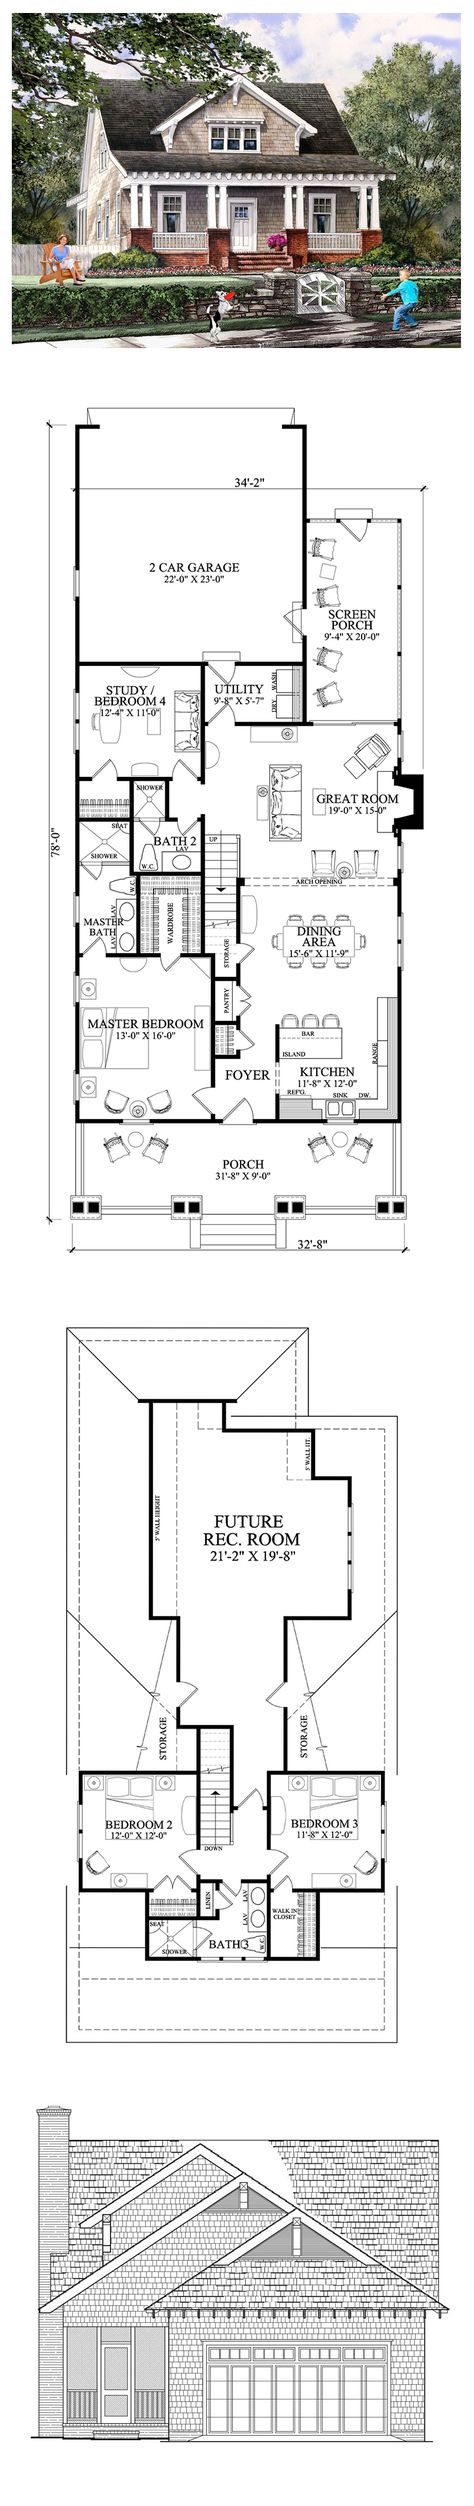 Bungalow House Plan 86121   Total Living Area: 1907 sq. ft., 4 bedrooms & 3 bathrooms. Summer evenings were the best! We'd play for hours while mom relaxed in her favorite spot. To this day, I can still hear the wind off that old frisbee. When I return home, it's like I never left. Memories made while living in our home always make me smile. #bungalow #houseplan